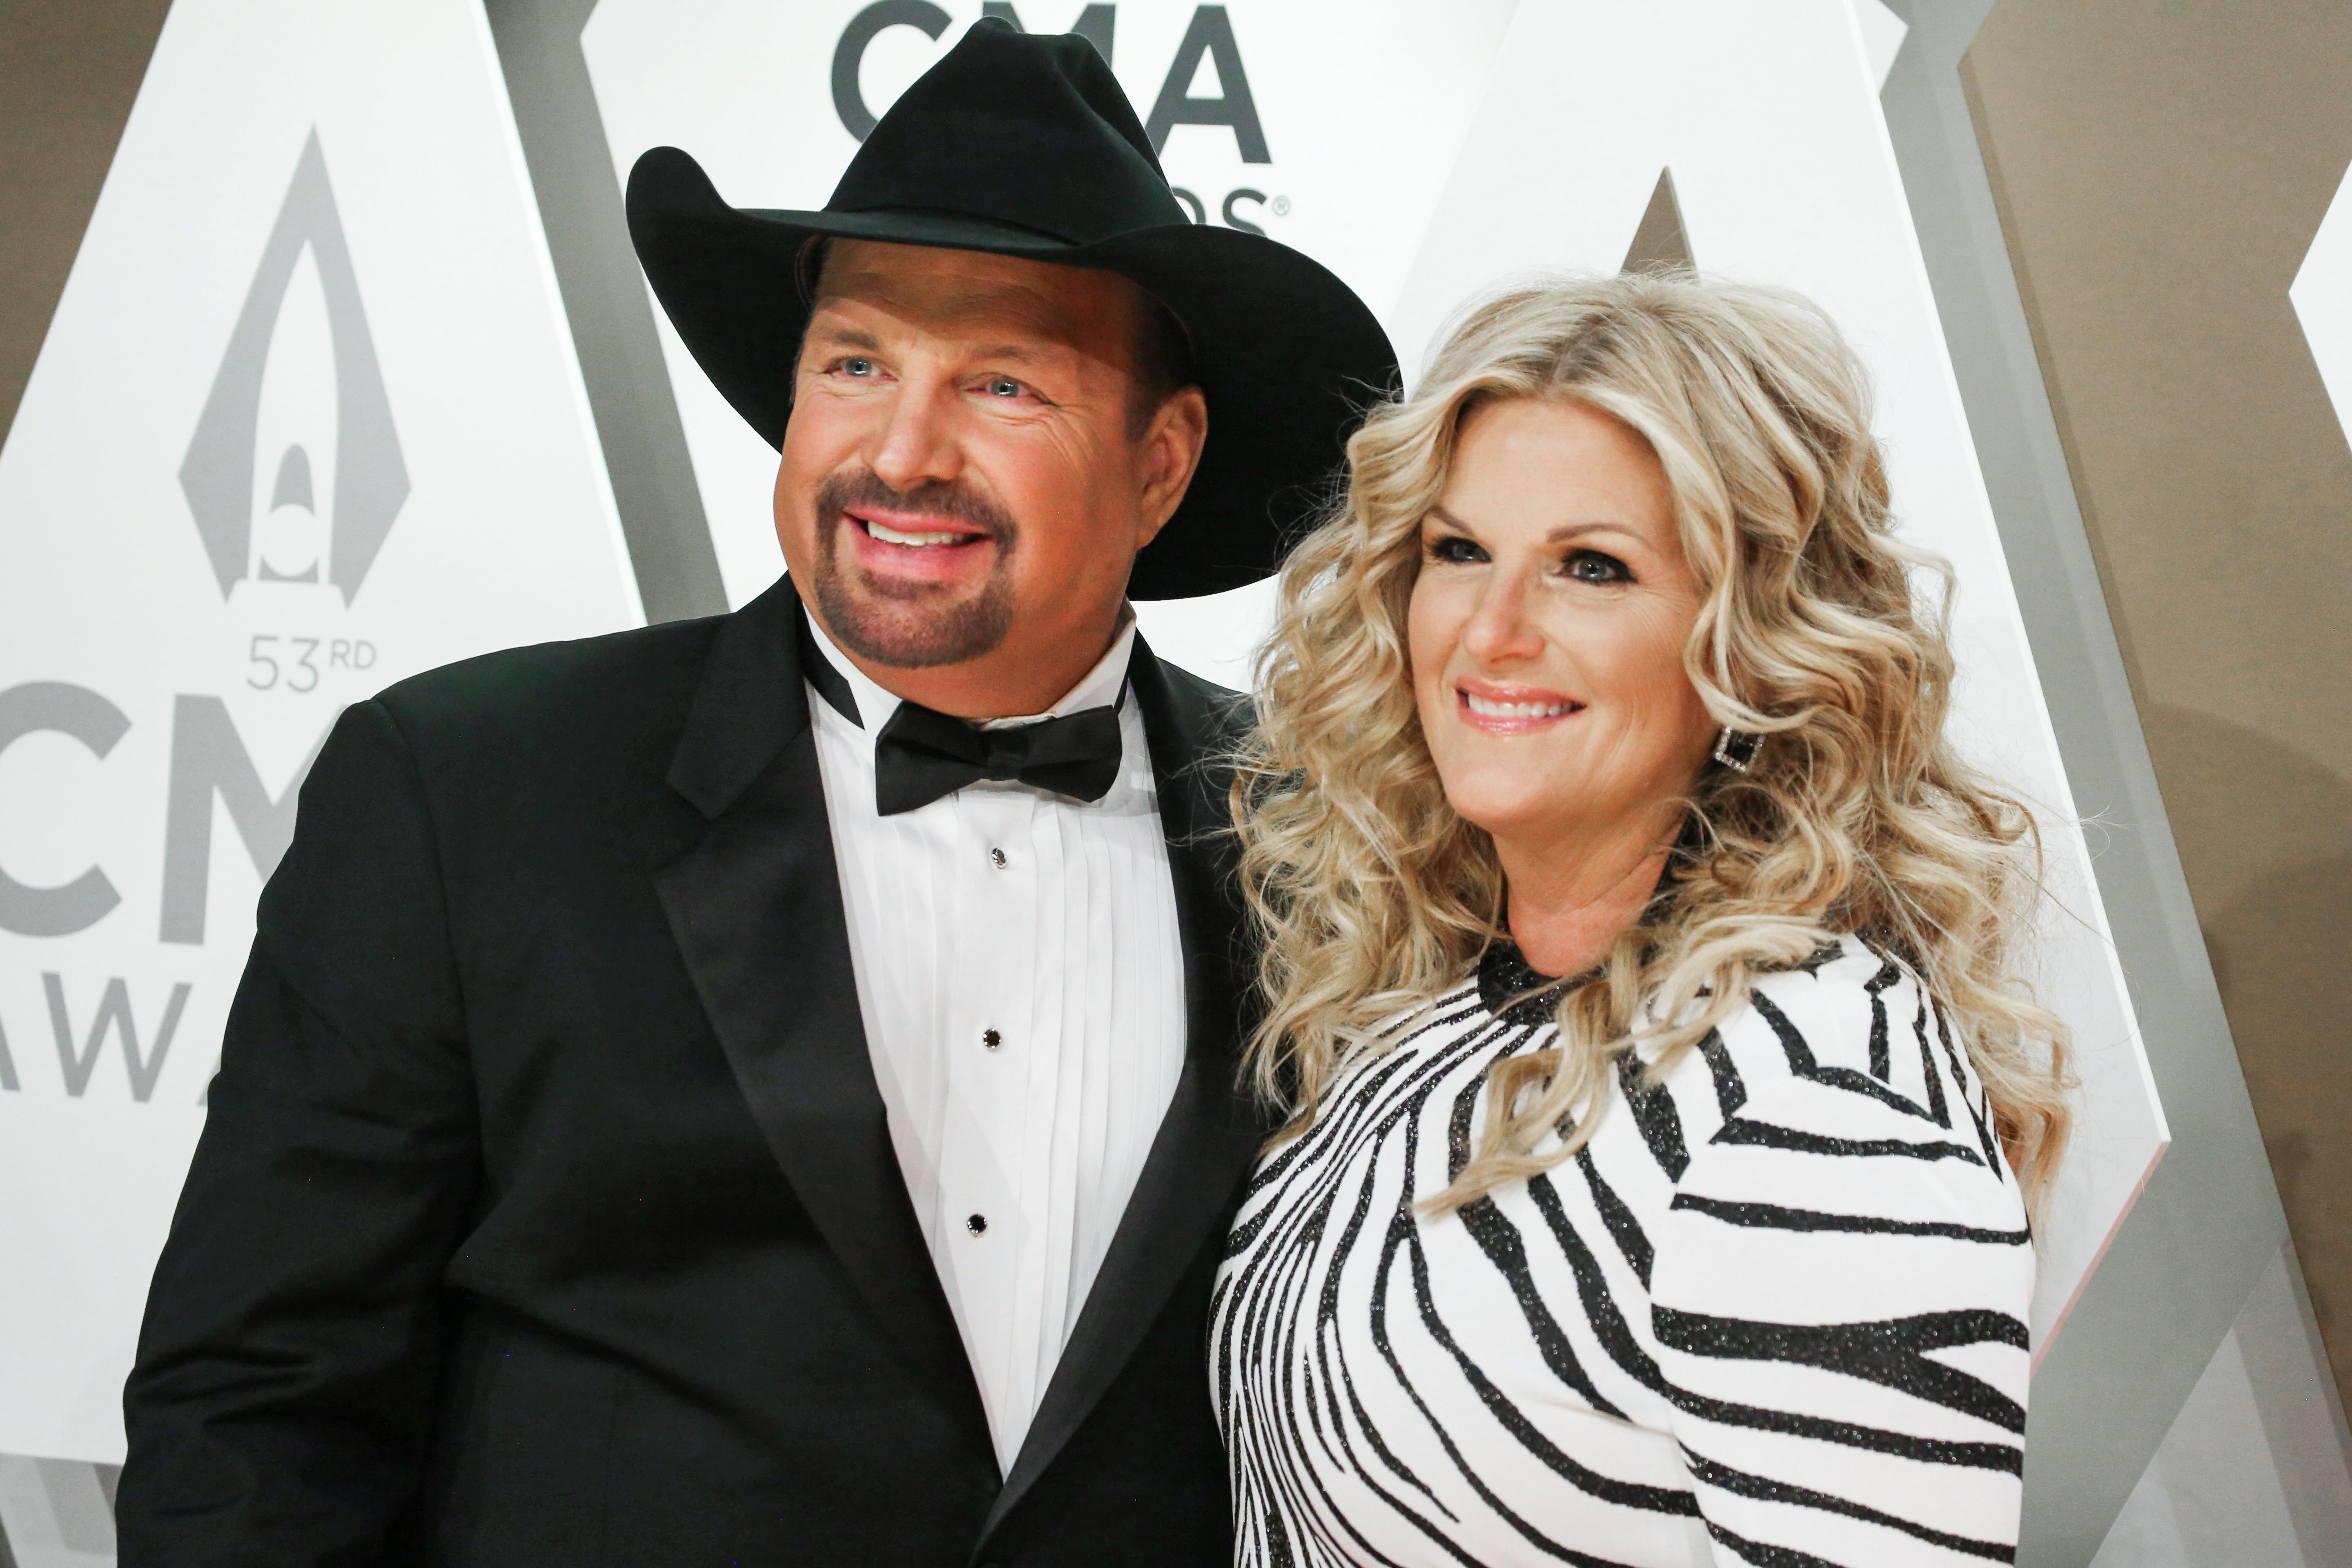 Garth Brooks And Trisha Yearwood To Perform Live Cbs Concert